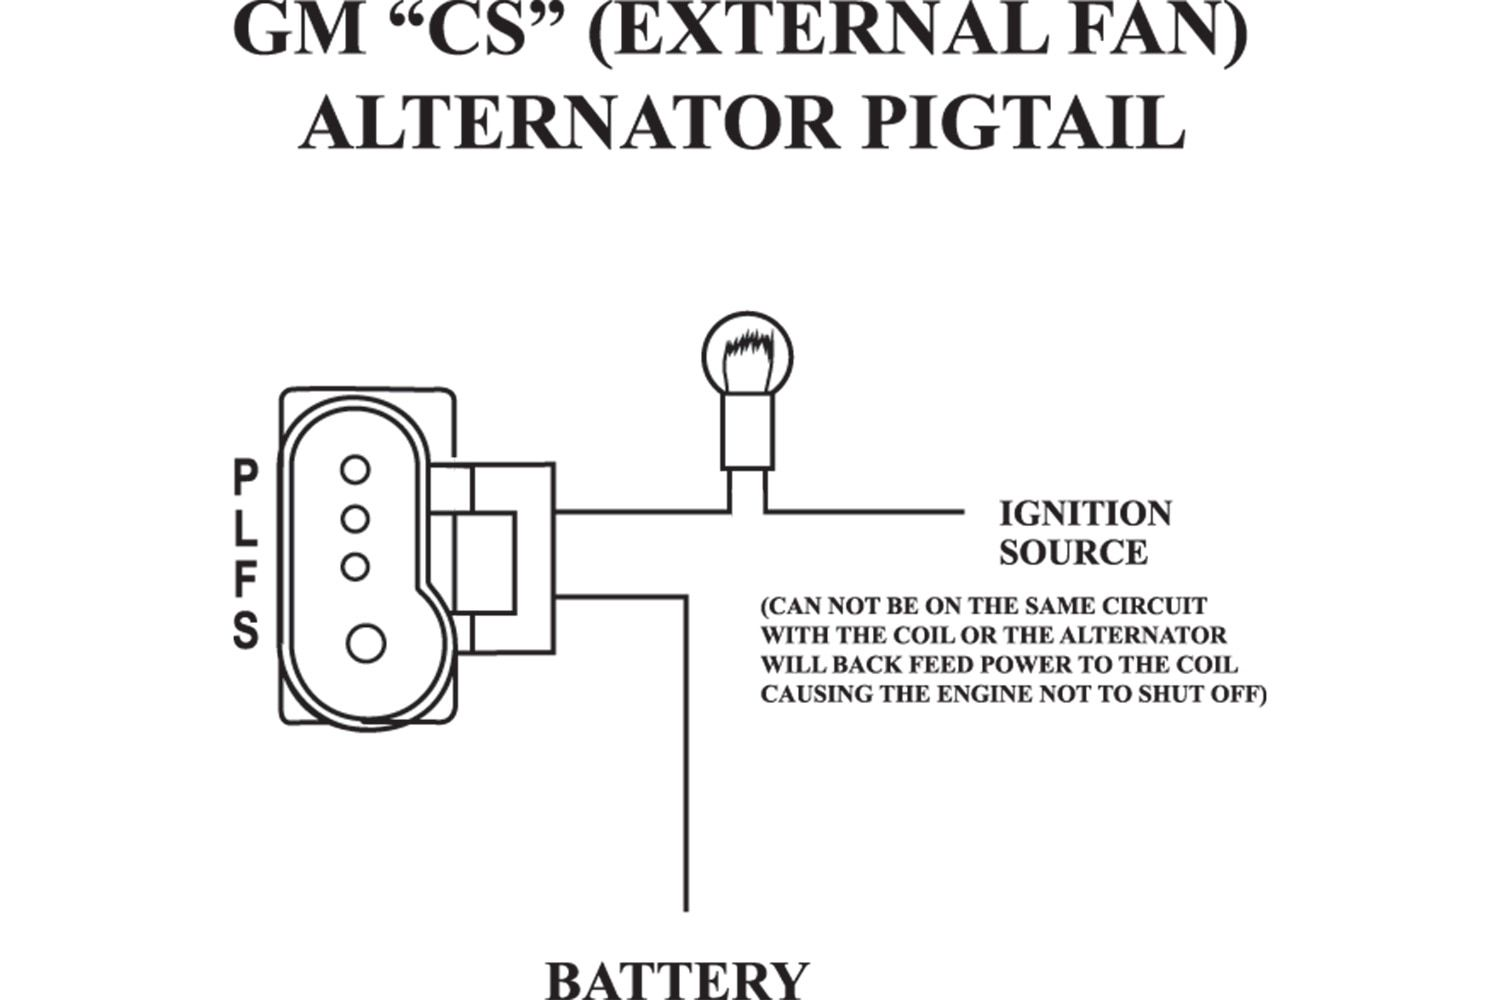 Ford Alternator Wiring Diagram External Regulator Of The External